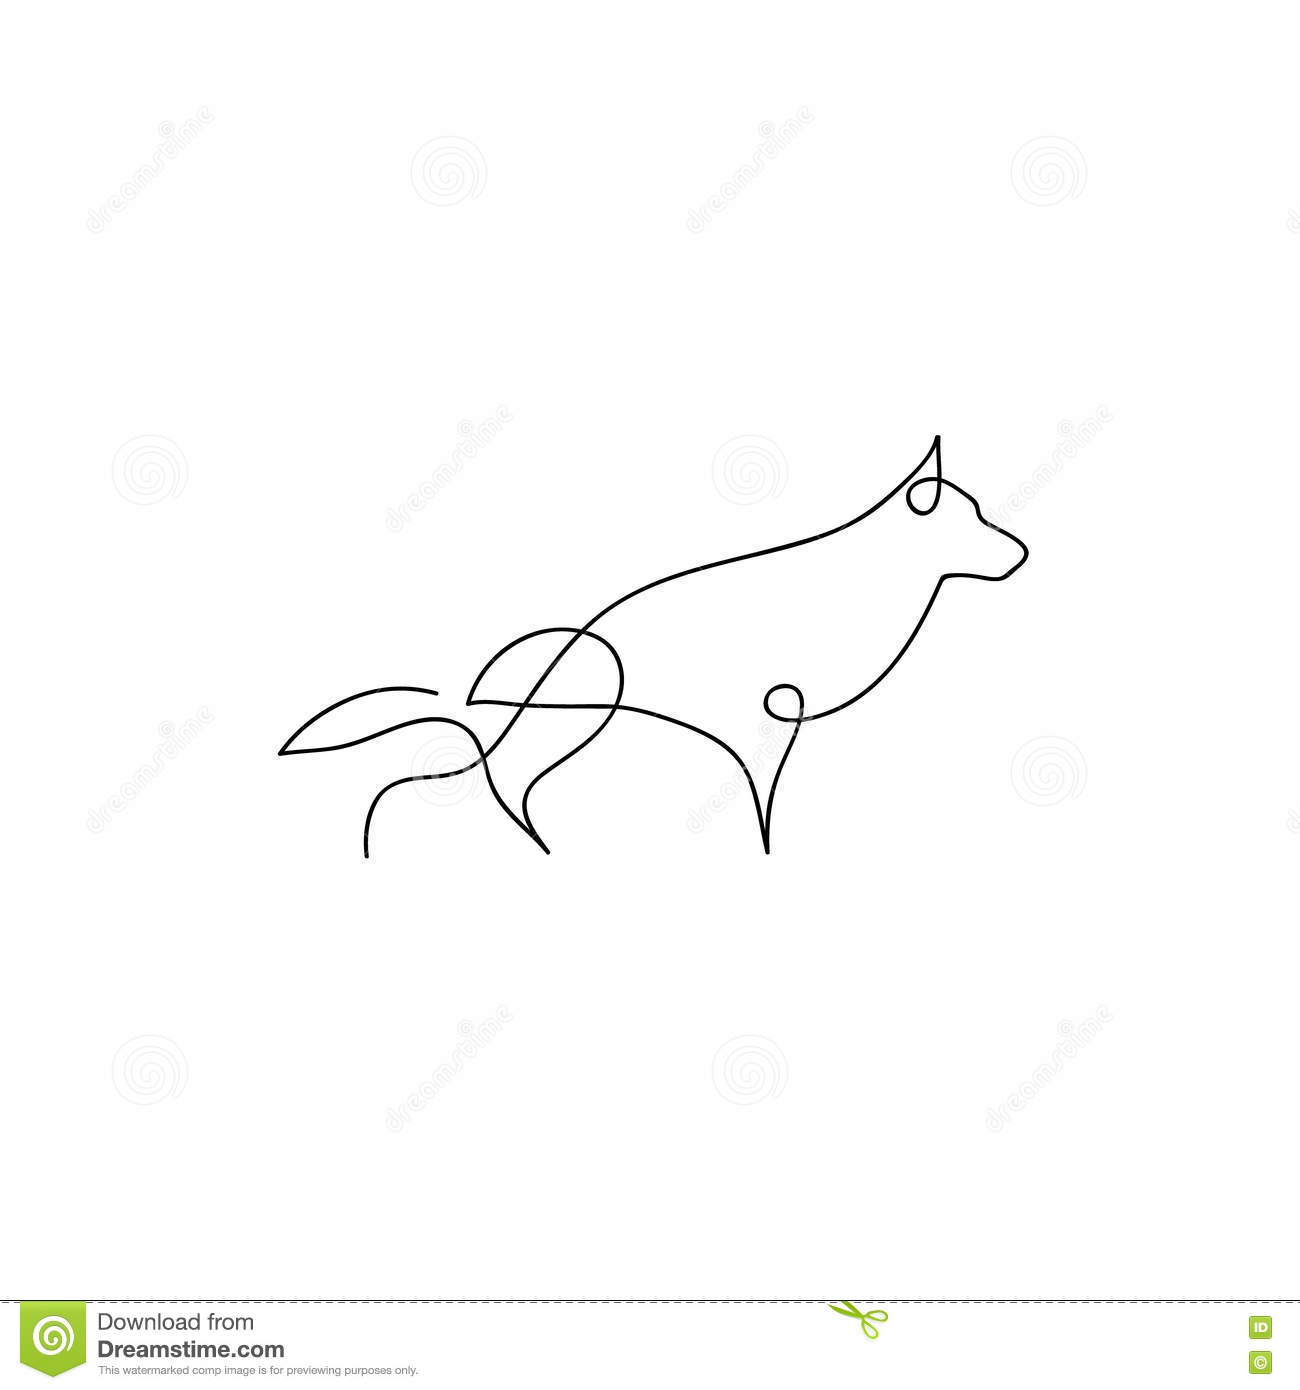 One Line Art Facepalm : One line dog design silhouette german shepherd hand